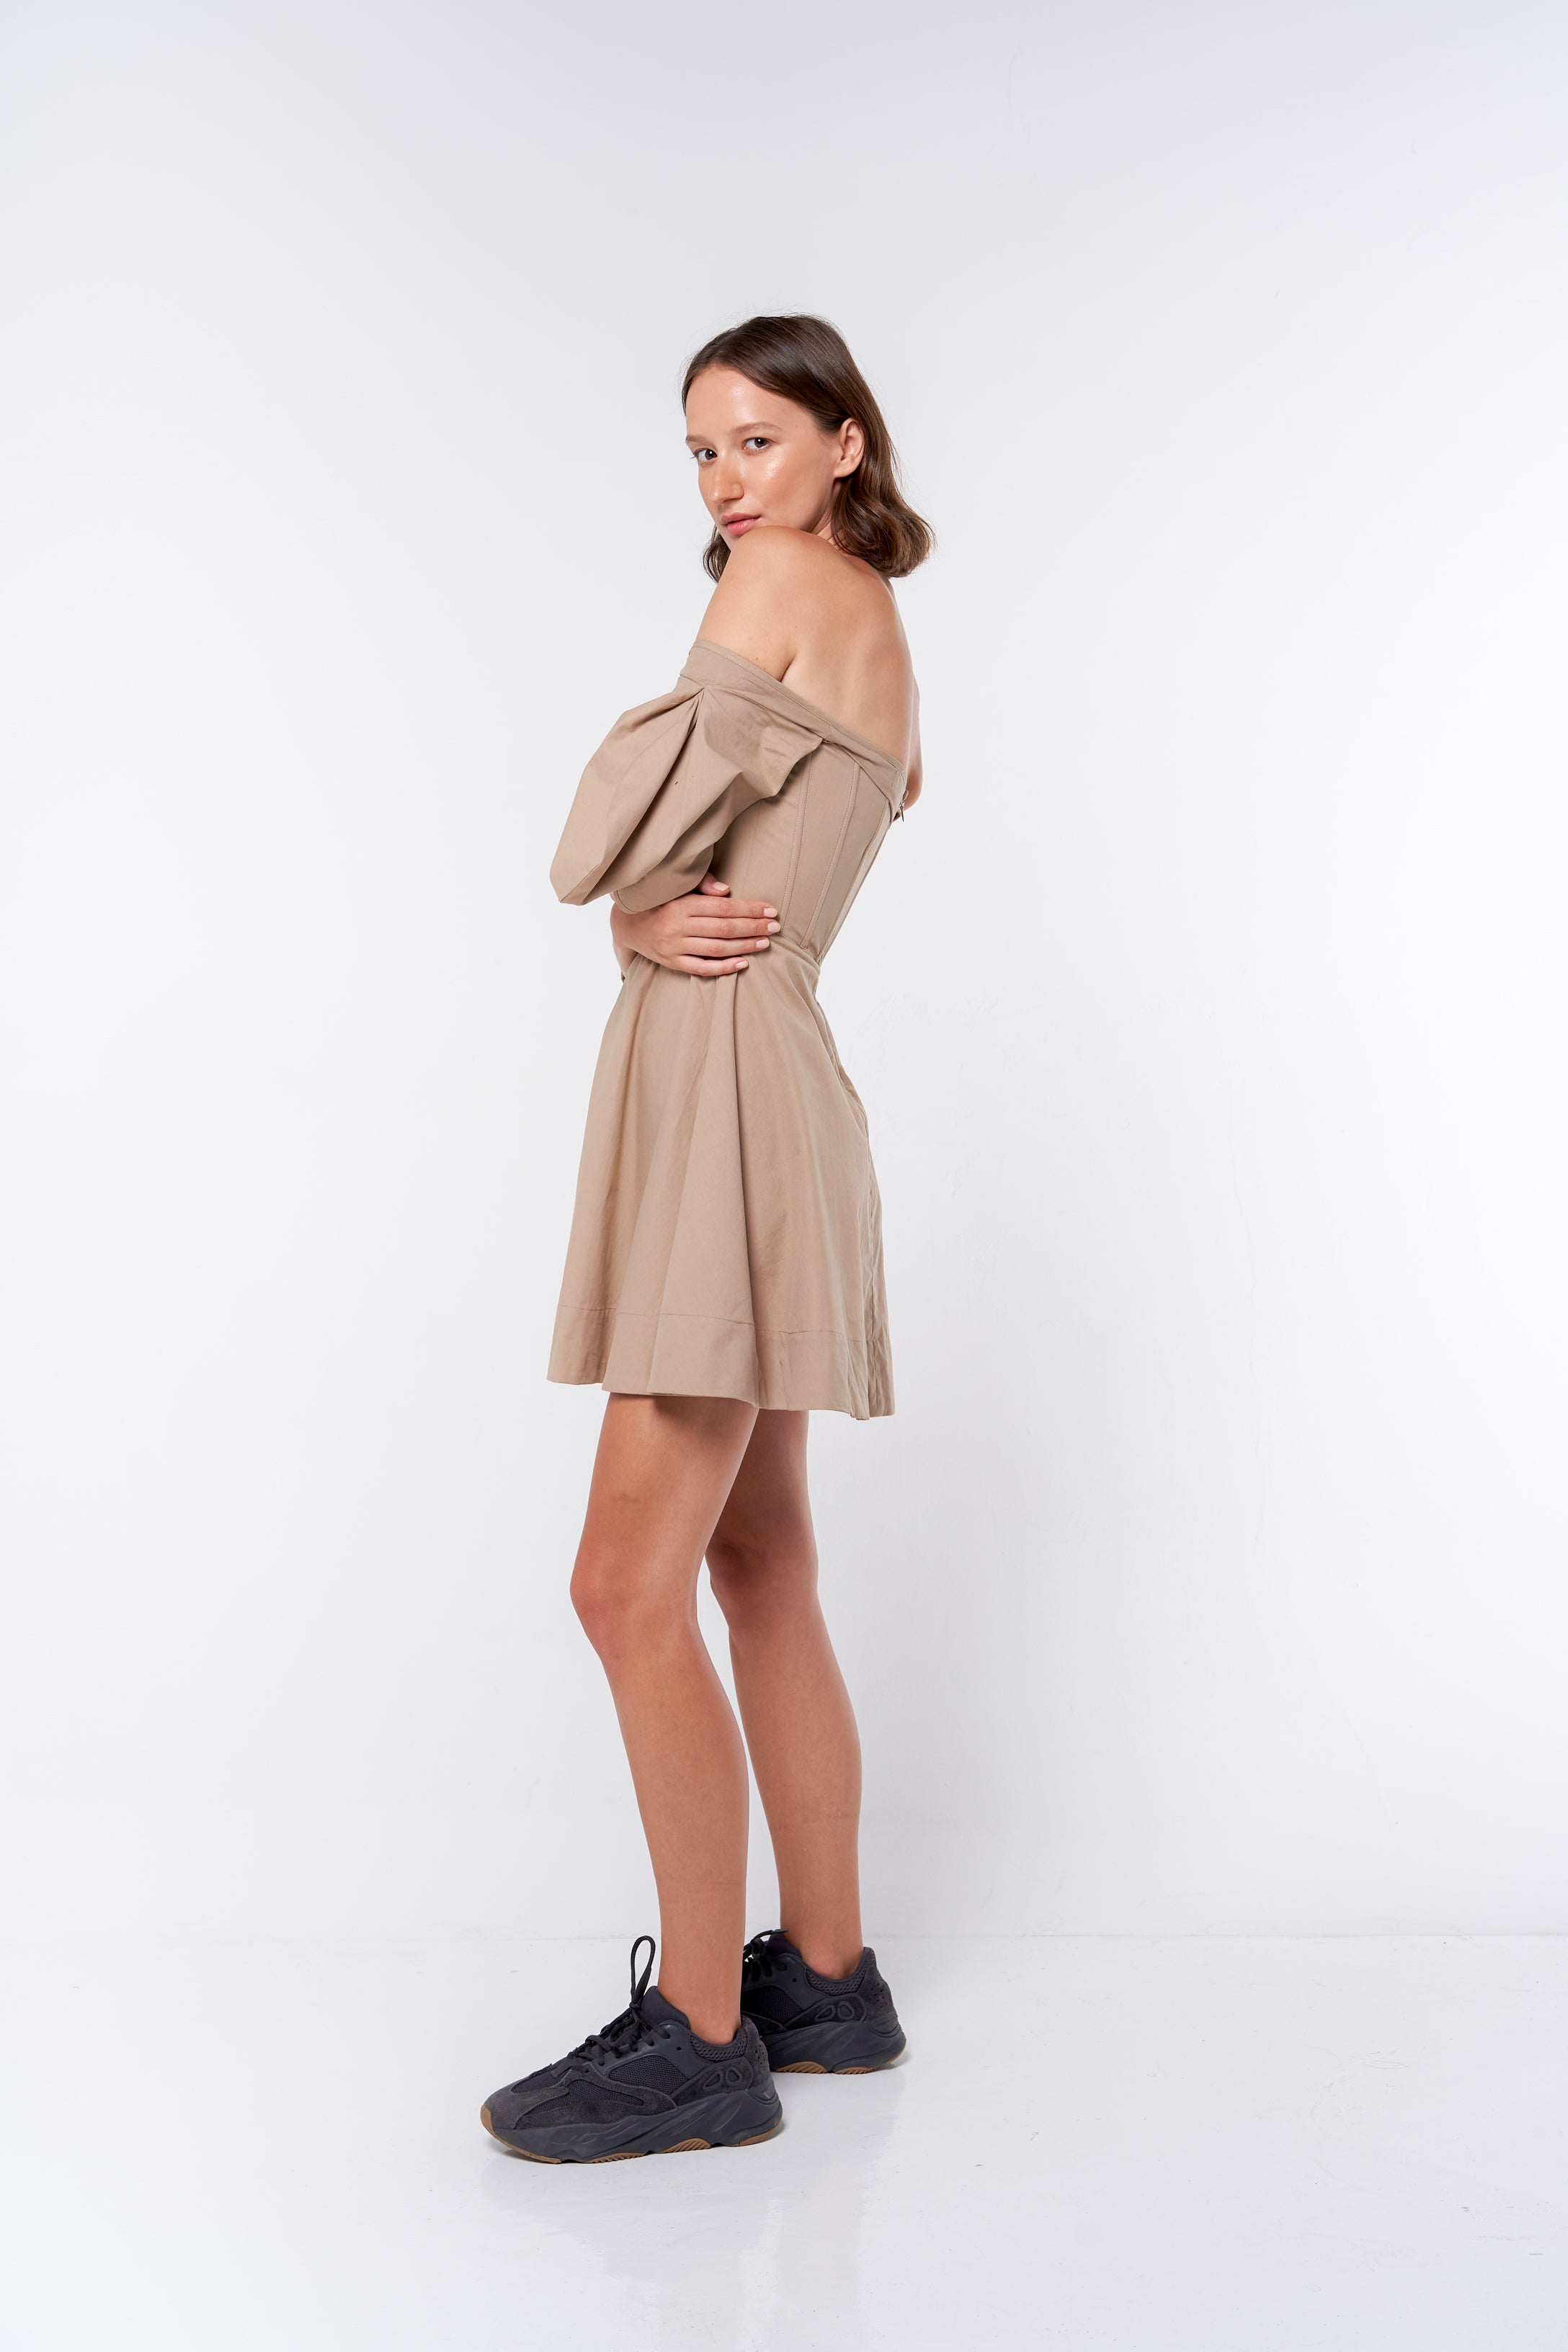 Corset Mini Dress - tan